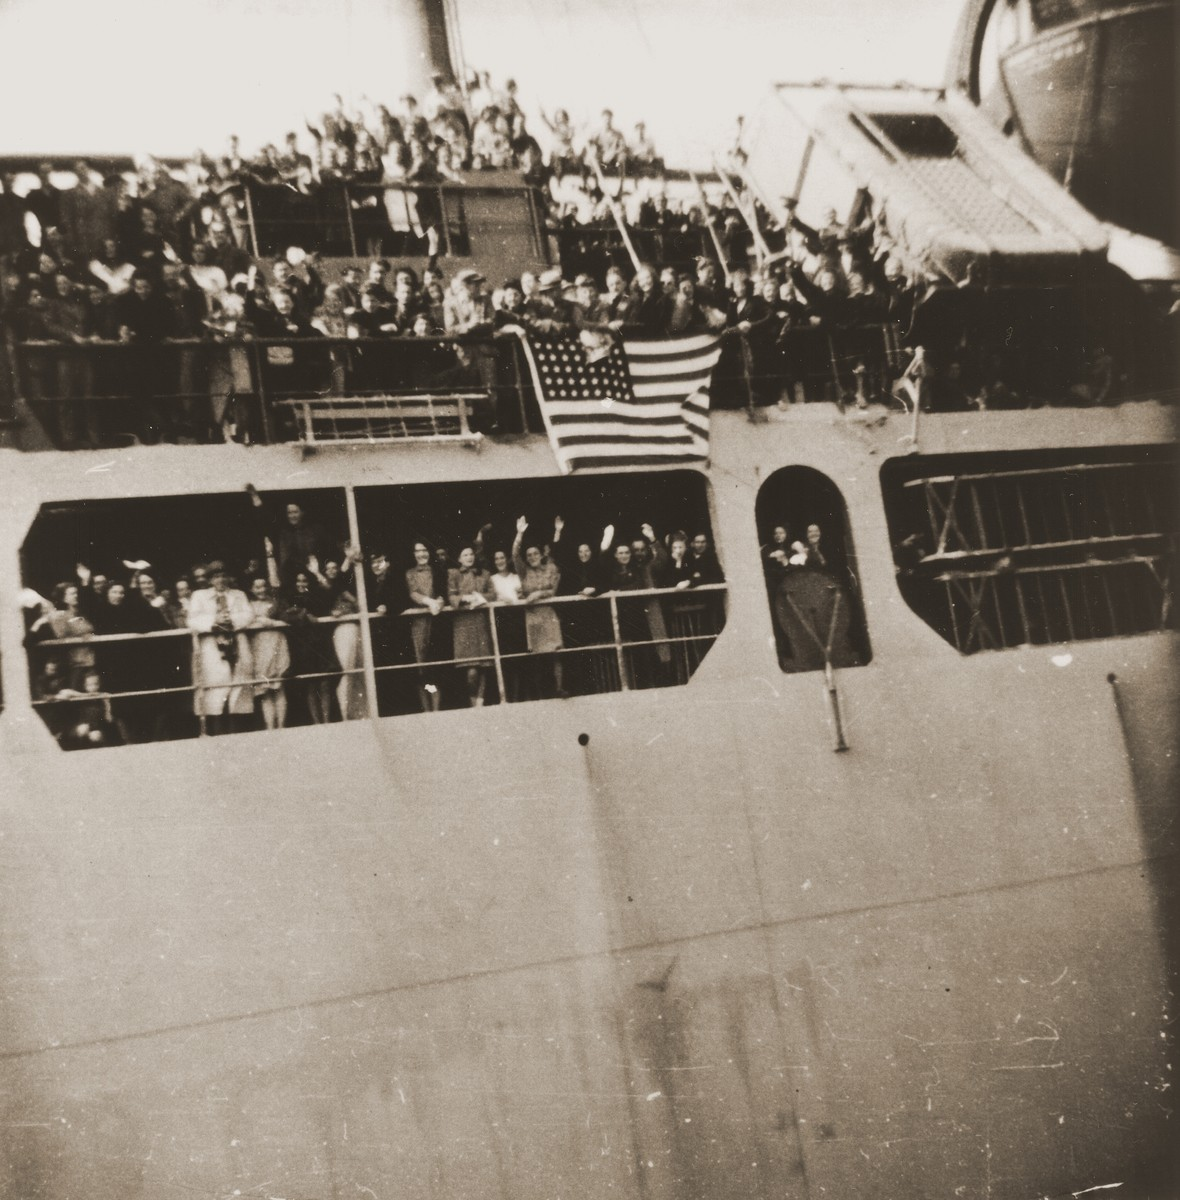 Arrival of the SS Ernie Pyle with Jewish DPs from Europe at the port of New York.